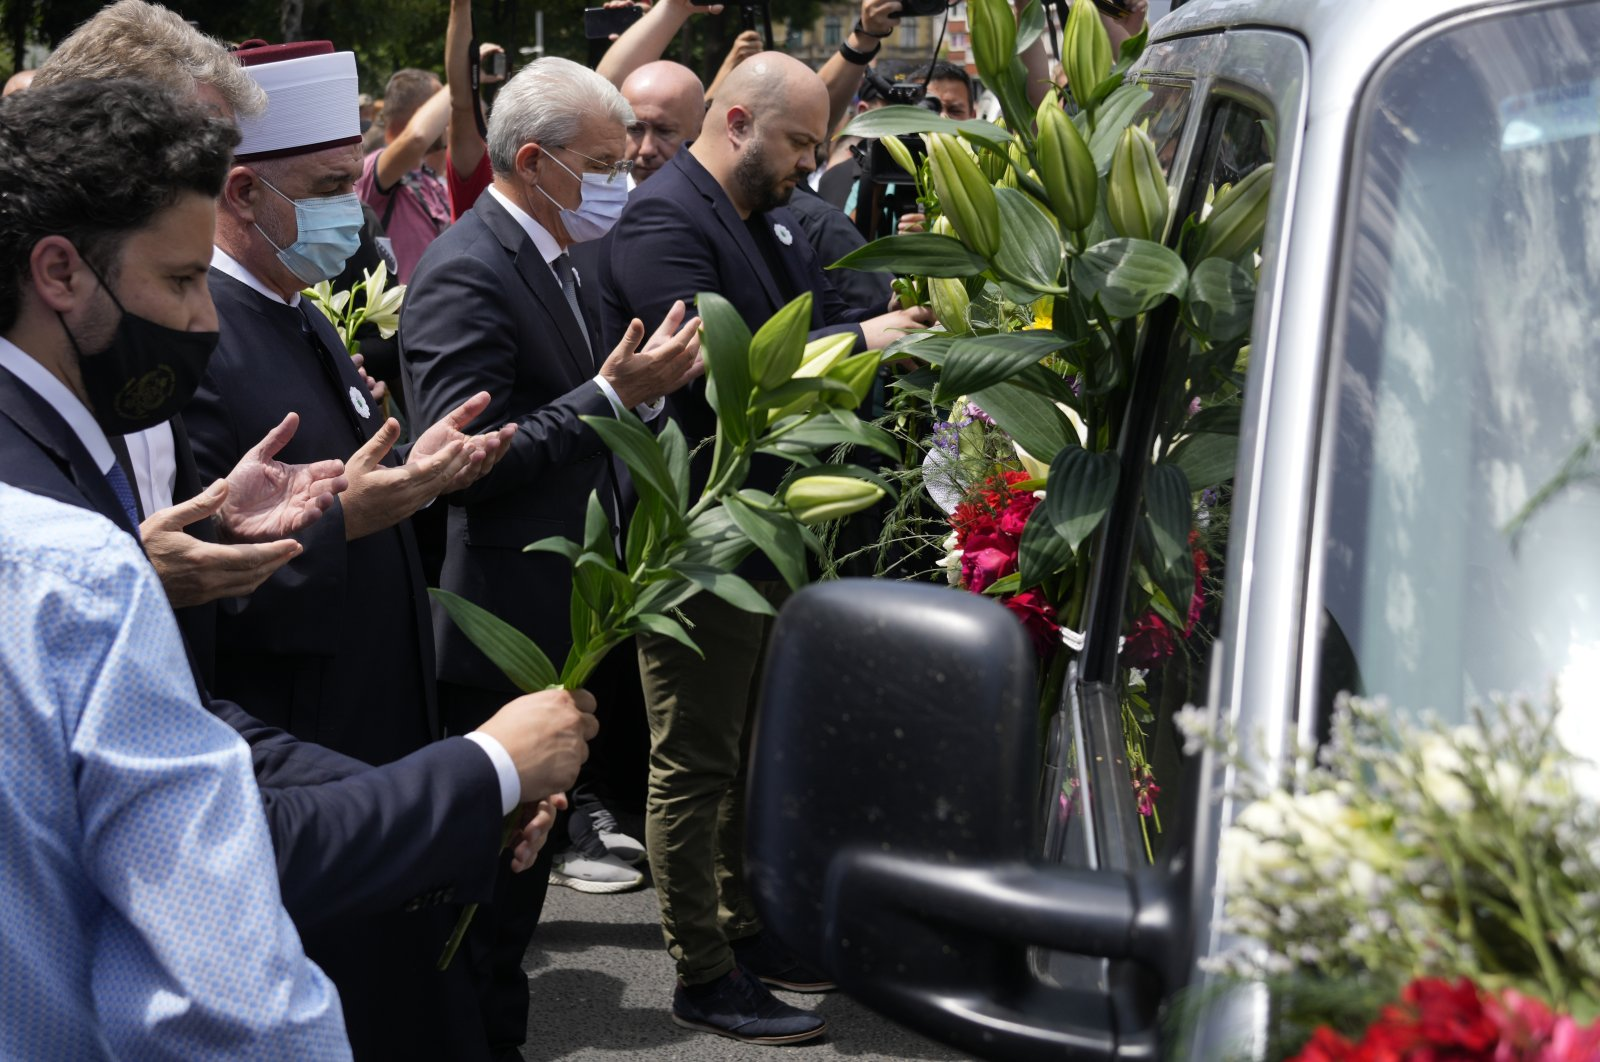 Dignitaries pay respect in front of a motorcade carrying 19 identified bodies of victims that will be buried in Srebrenica on Sunday, Sarajevo, Bosnia, July 9, 2021. (AP Photo)